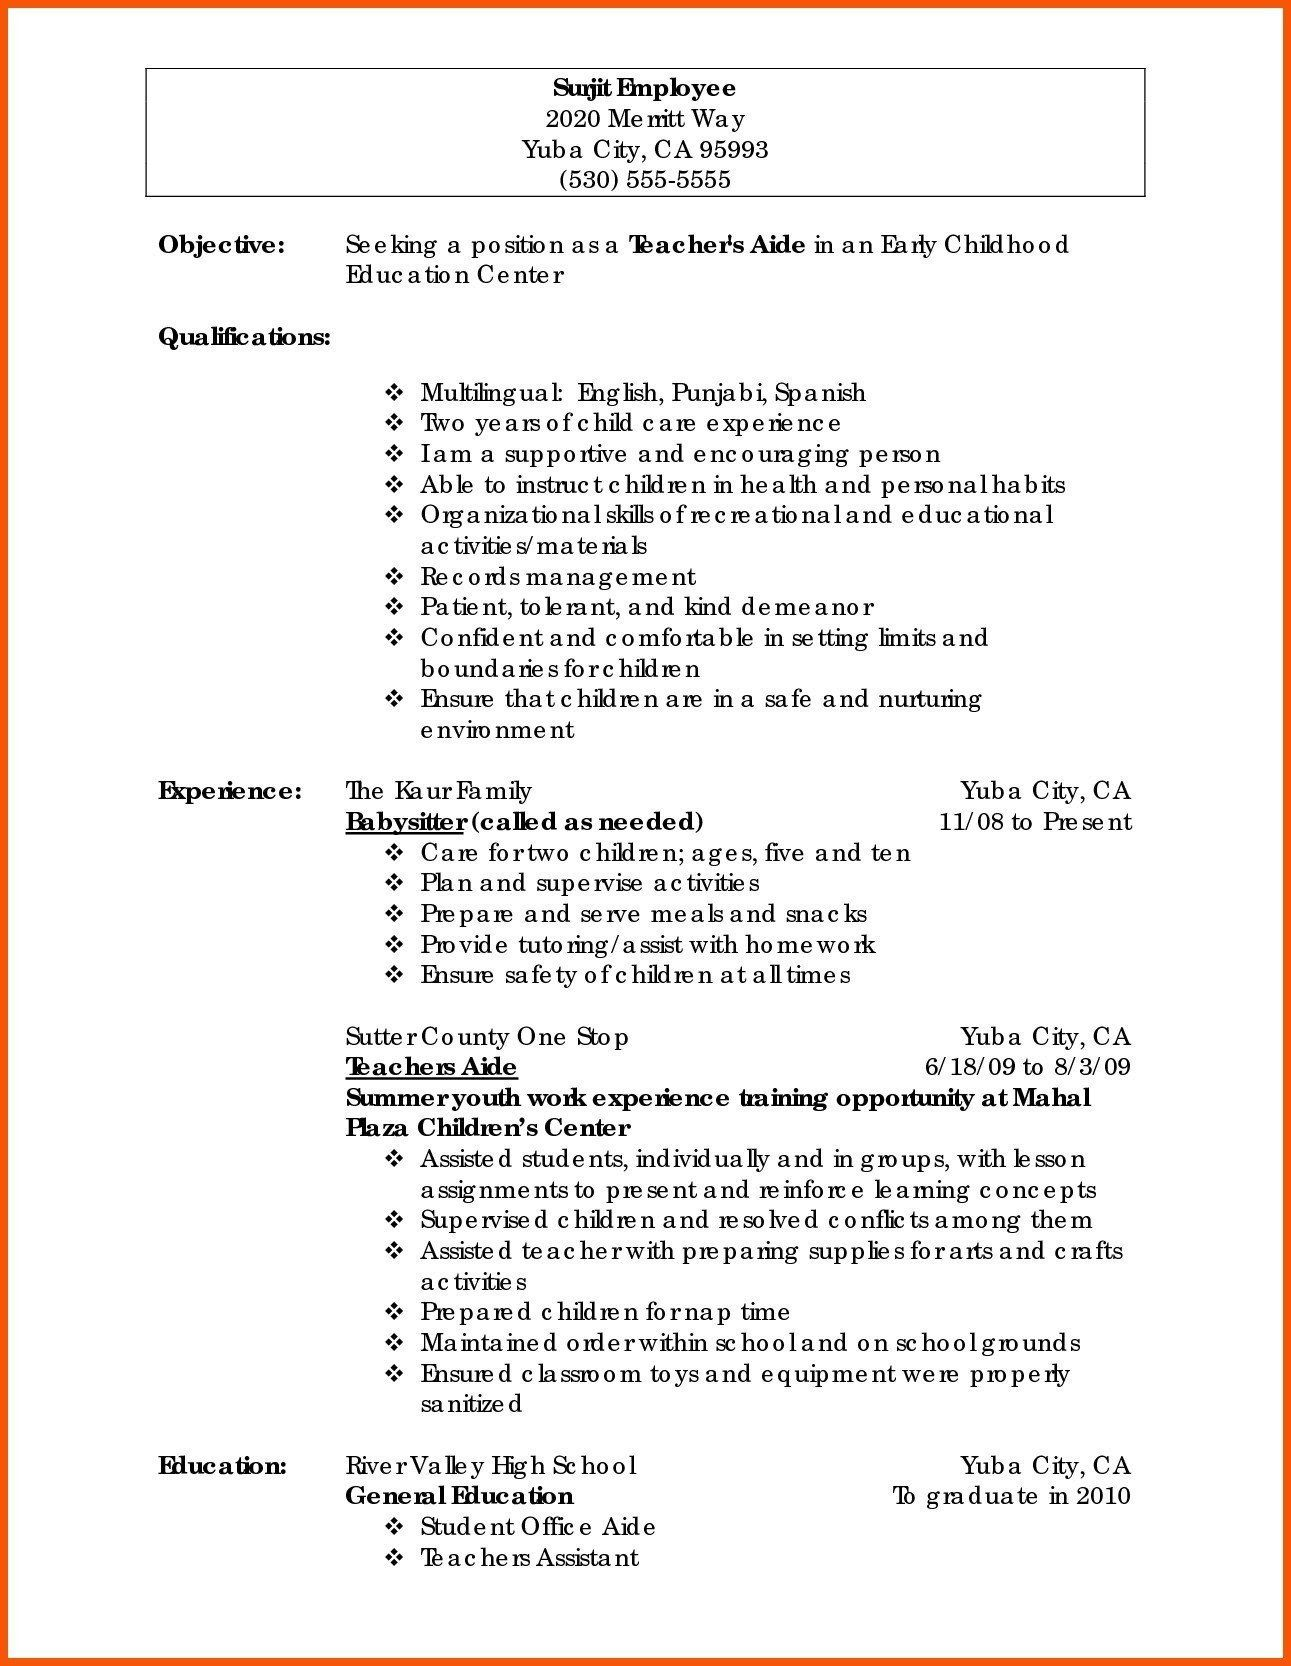 Self Employed Contractor Resume Inspirational Resume for